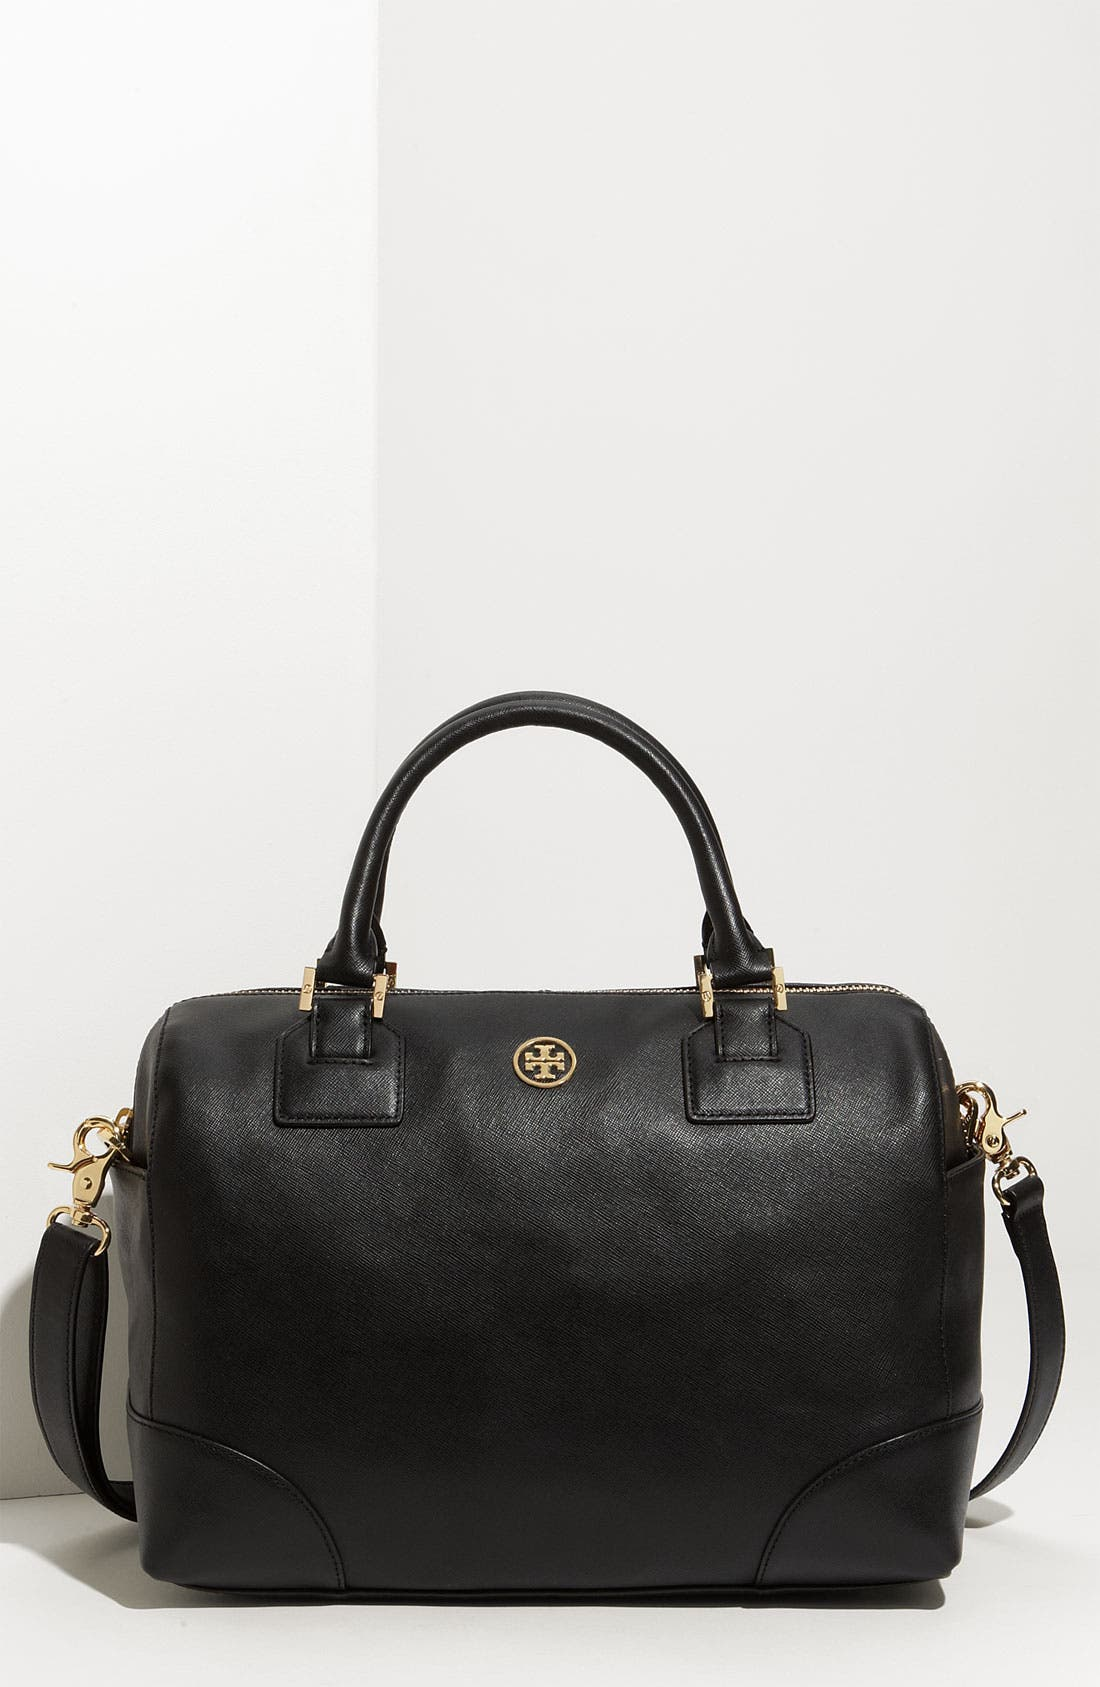 Alternate Image 1 Selected - Tory Burch 'Robinson' Satchel